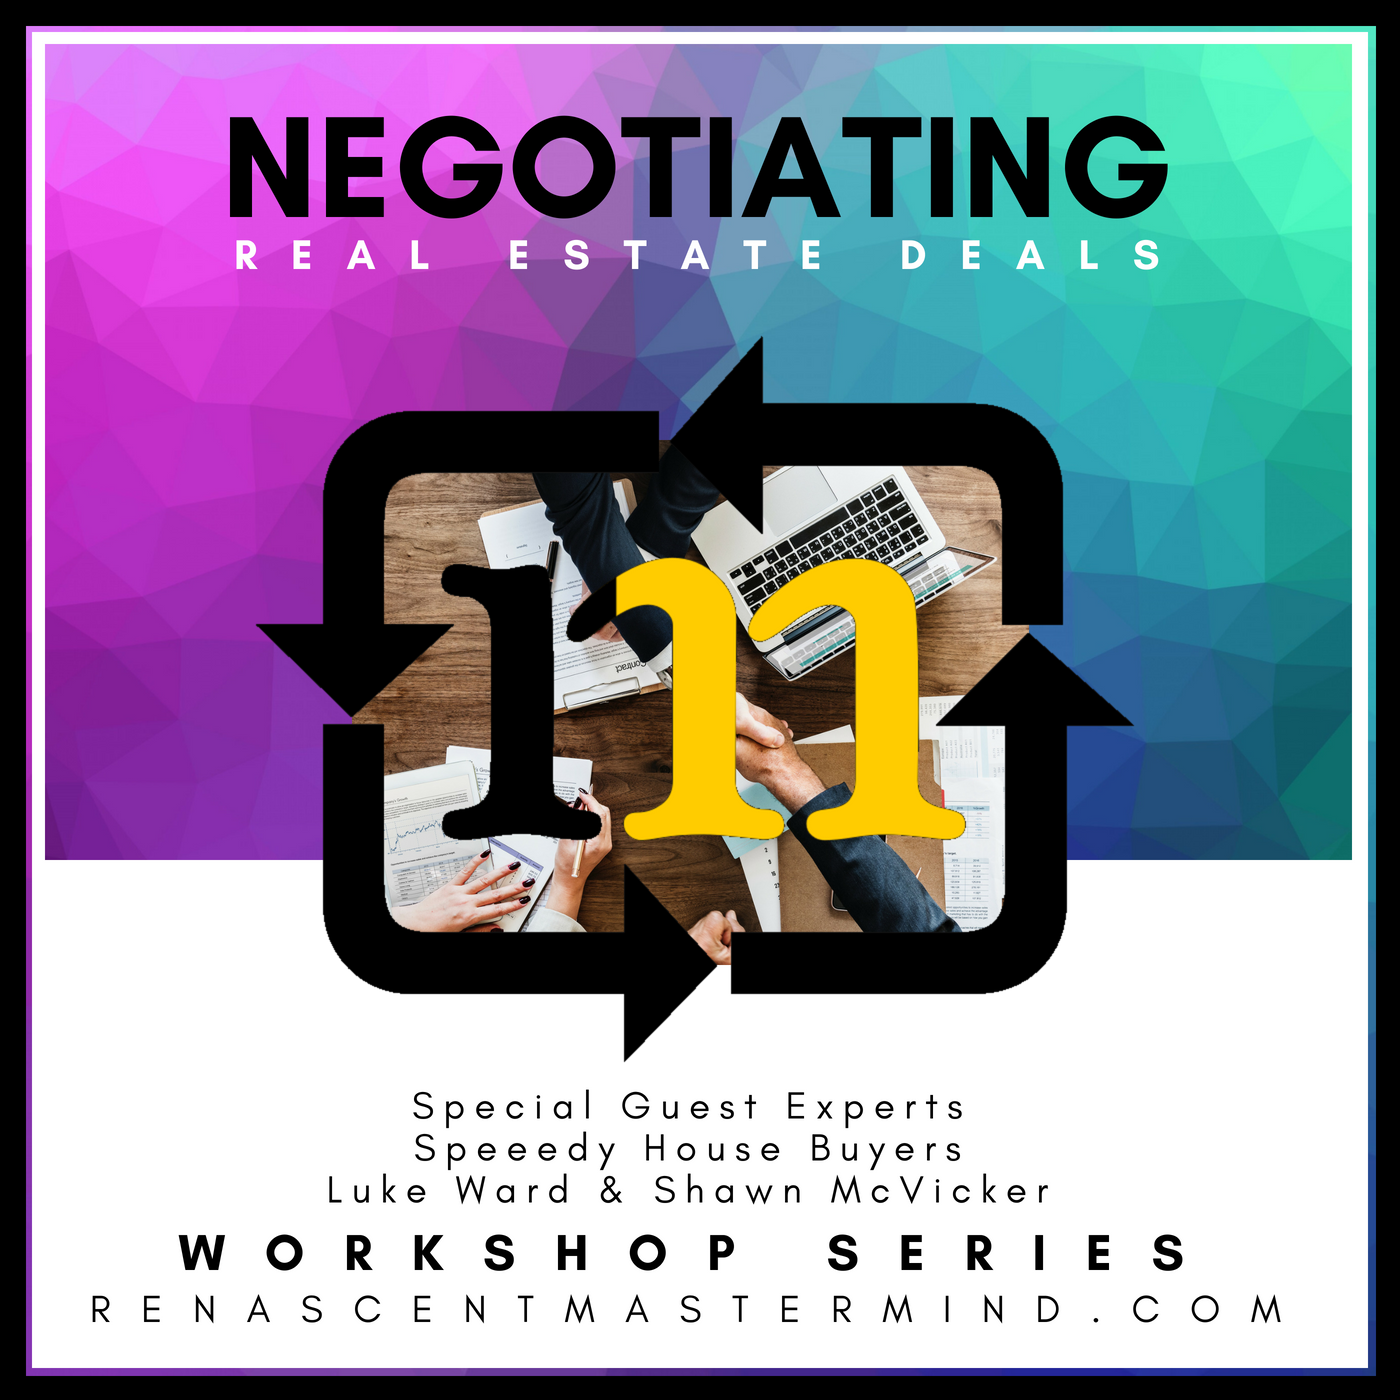 Copy of Negotiating Real Estate Deals | Workshop Series with special guest experts Speeedy House Buyerswith Luke Ward & Shawn McVicker